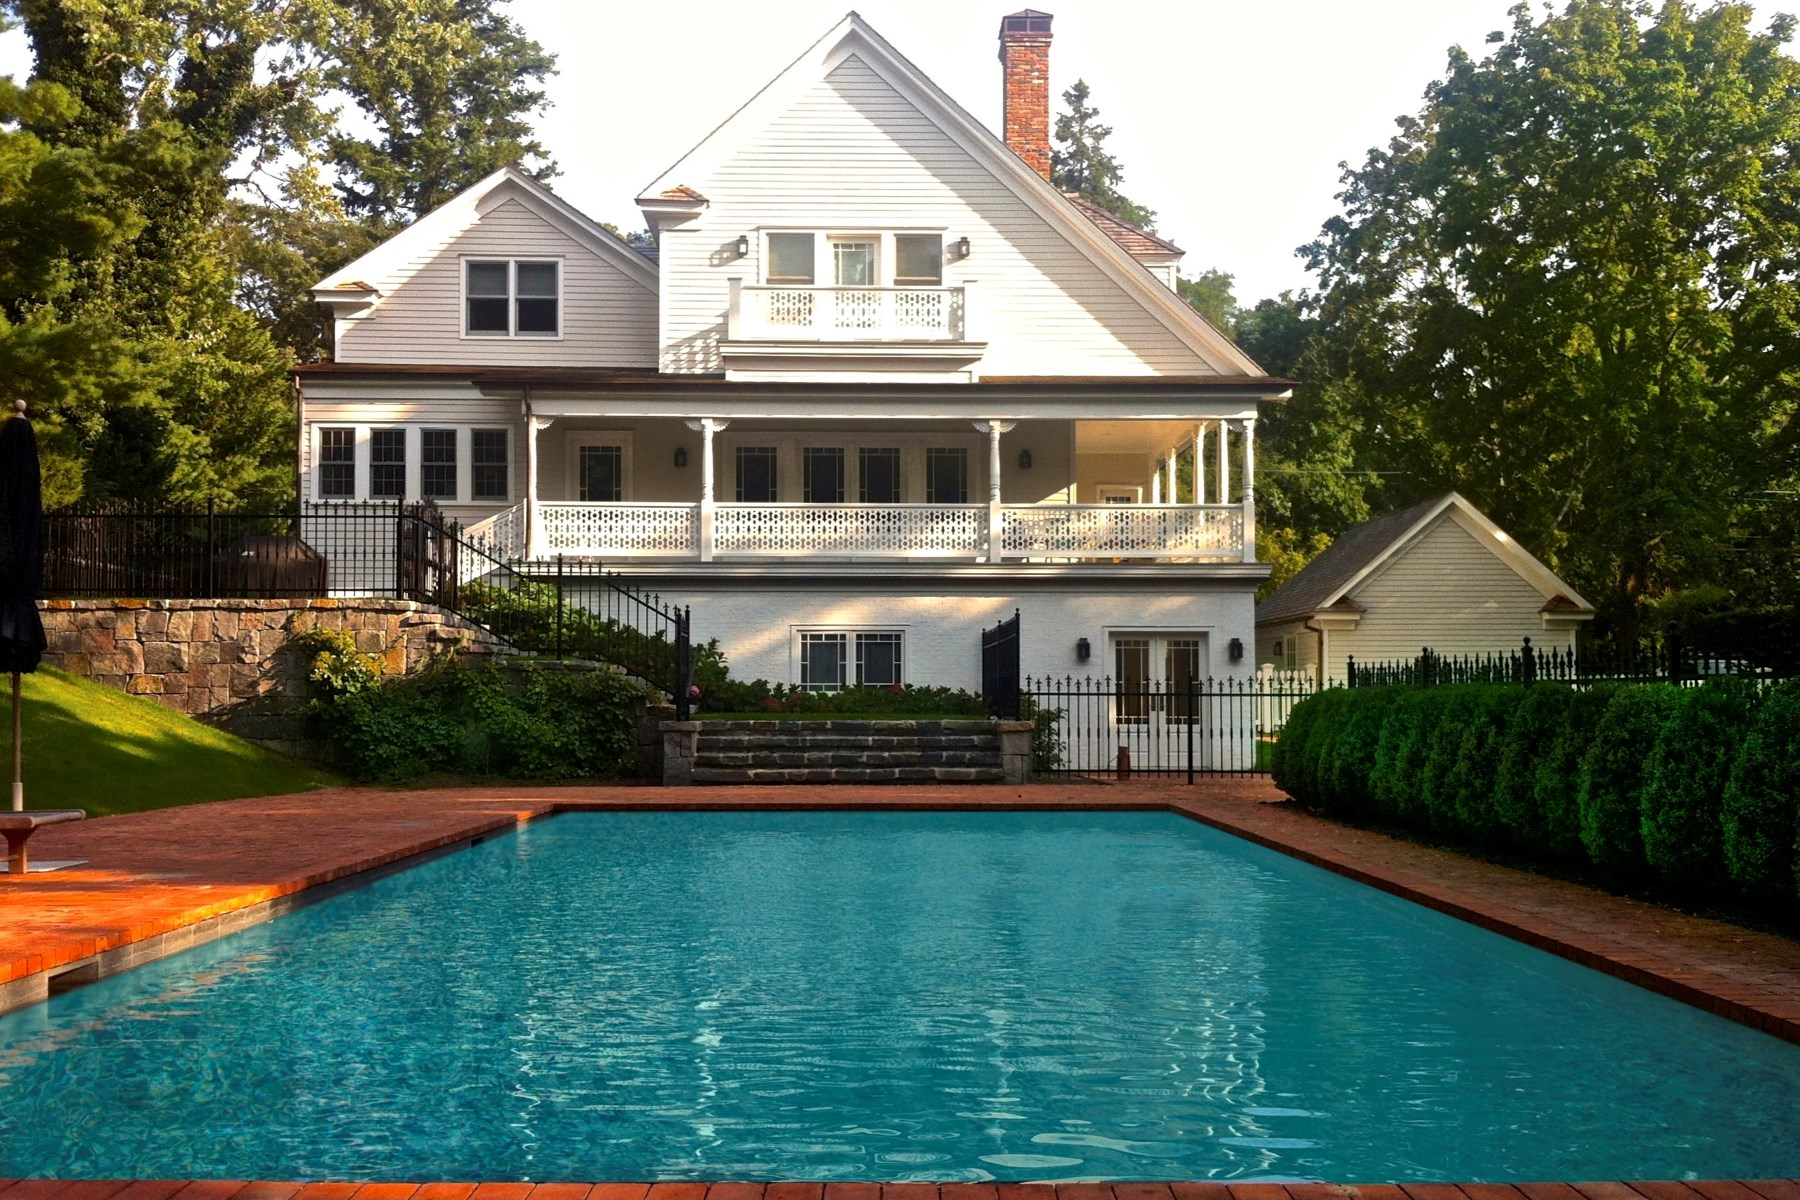 Single Family Home for Sale at Sag Harbor Historic District Jewel 71 Jermain Avenue Sag Harbor Village, Sag Harbor, New York, 11963 United States